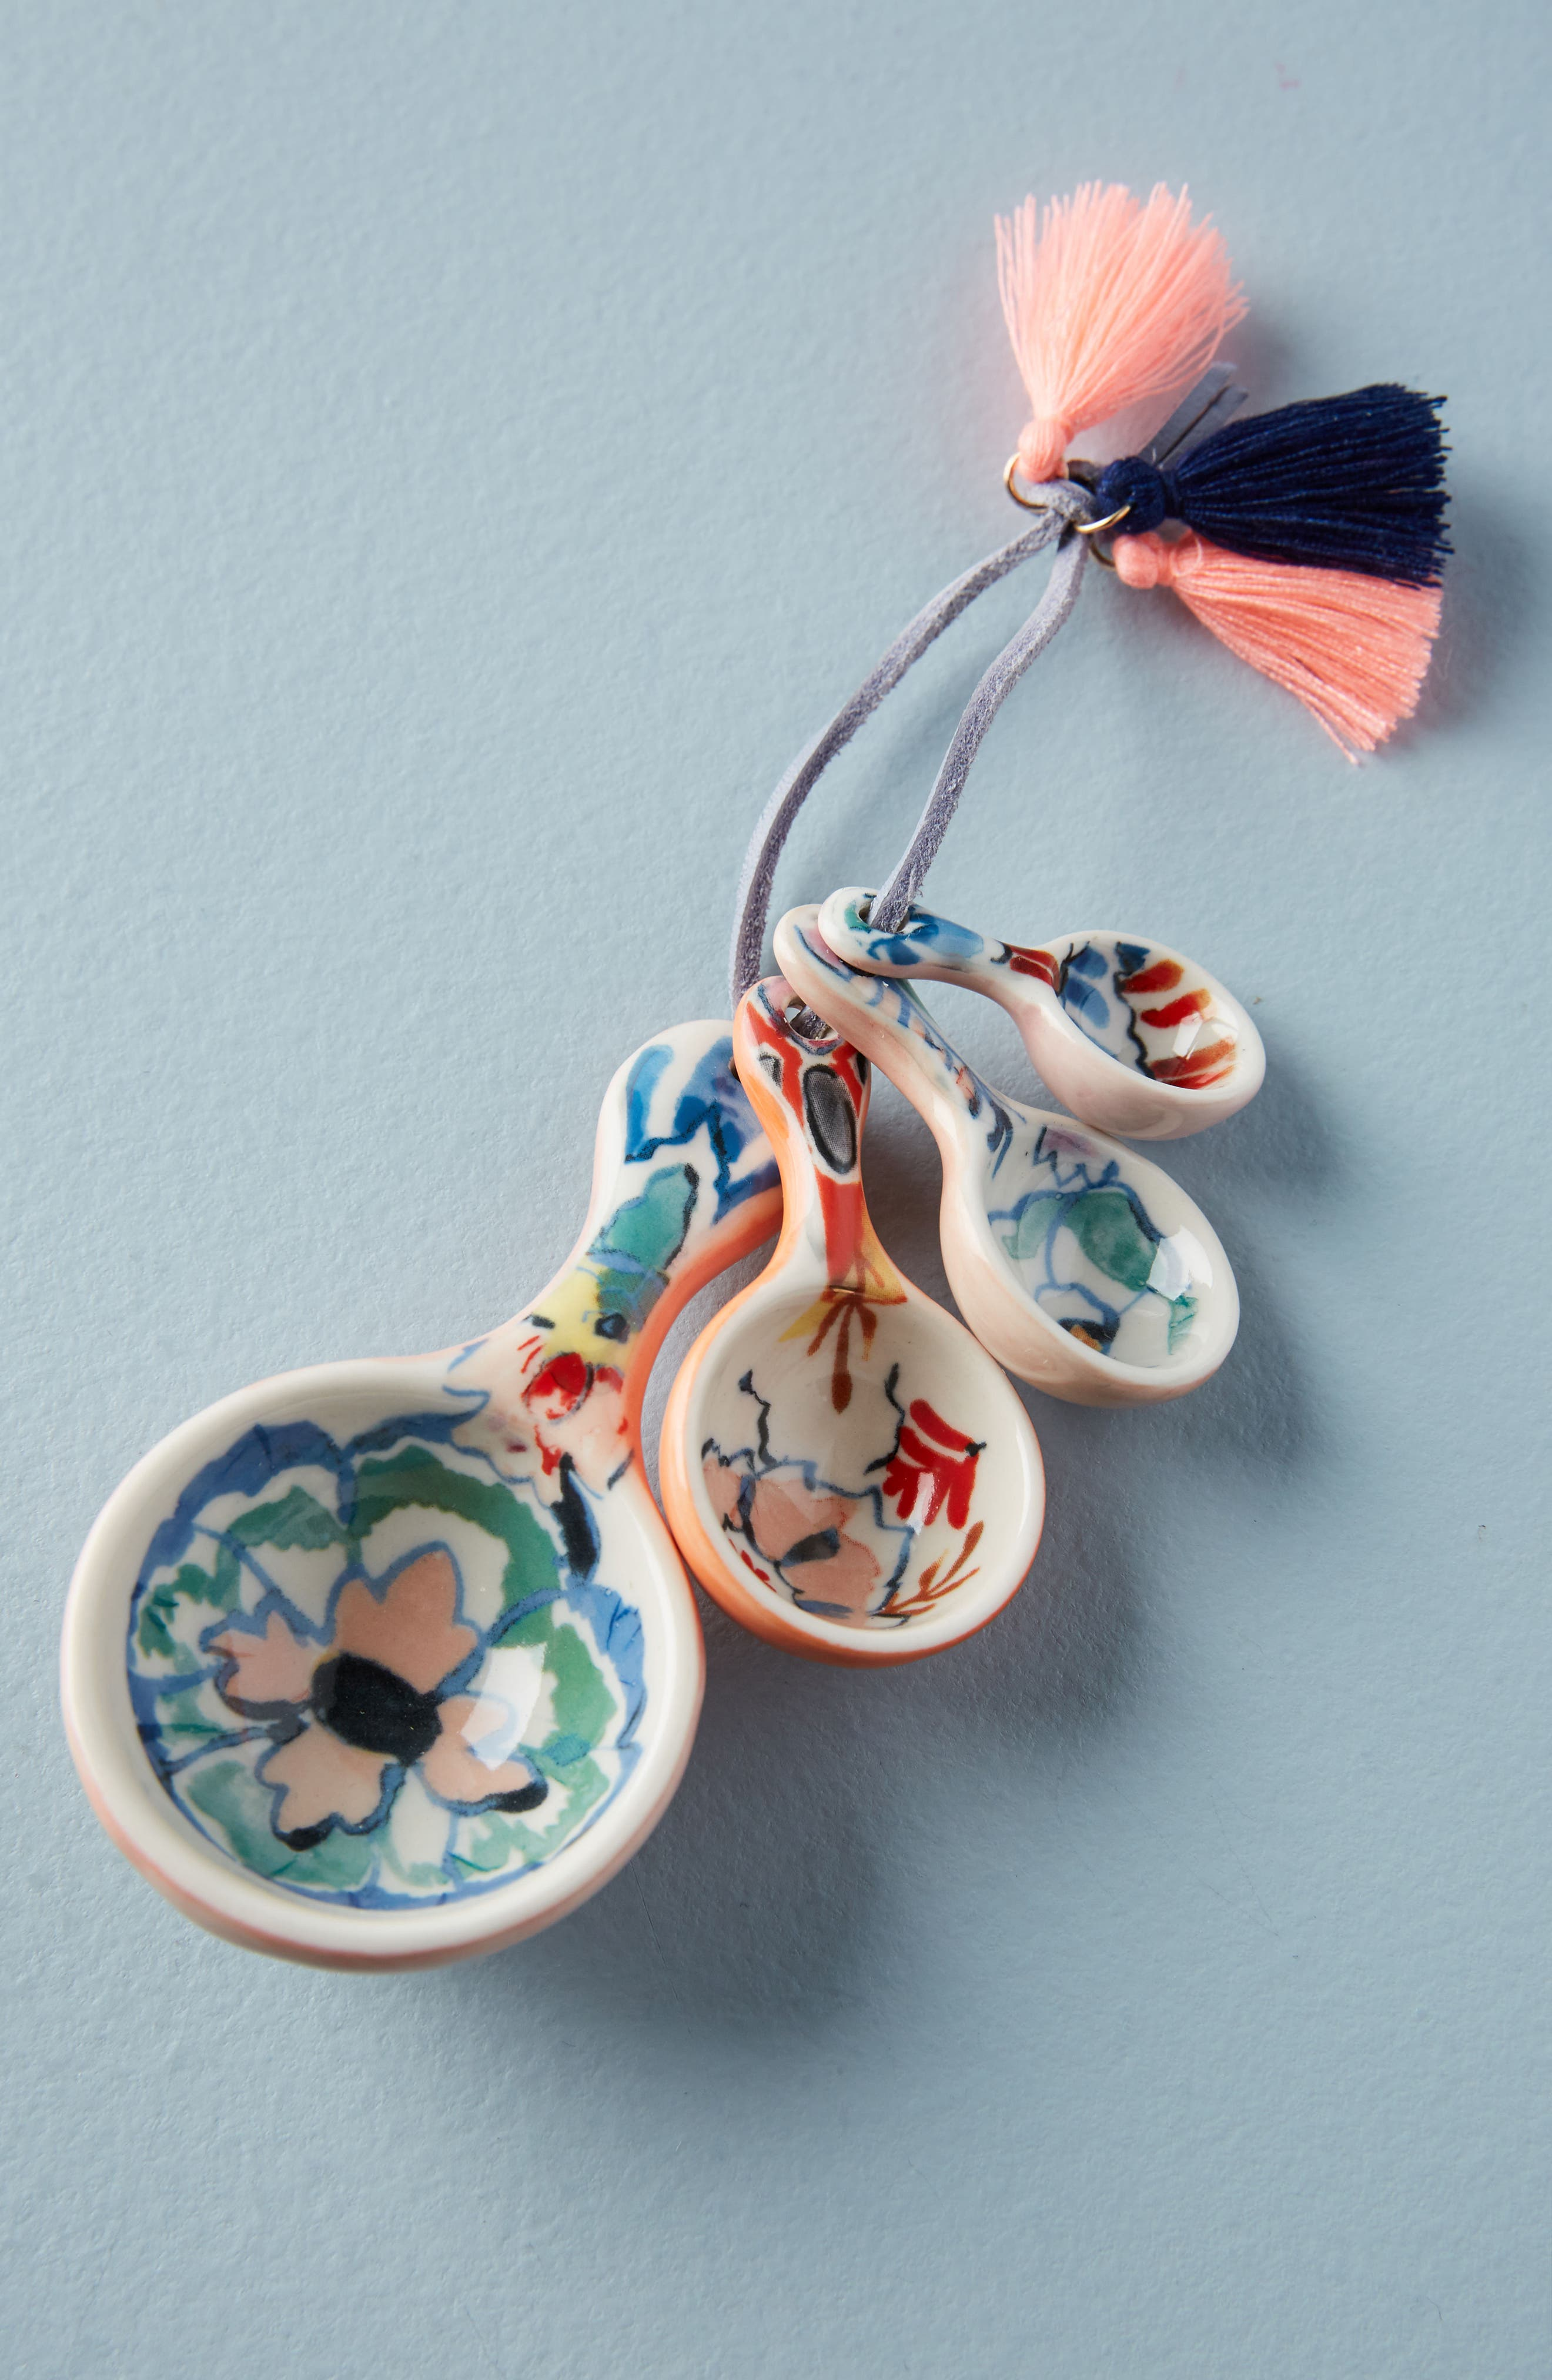 Alternate Image 1 Selected - Anthropologie Eres Measuring Spoons